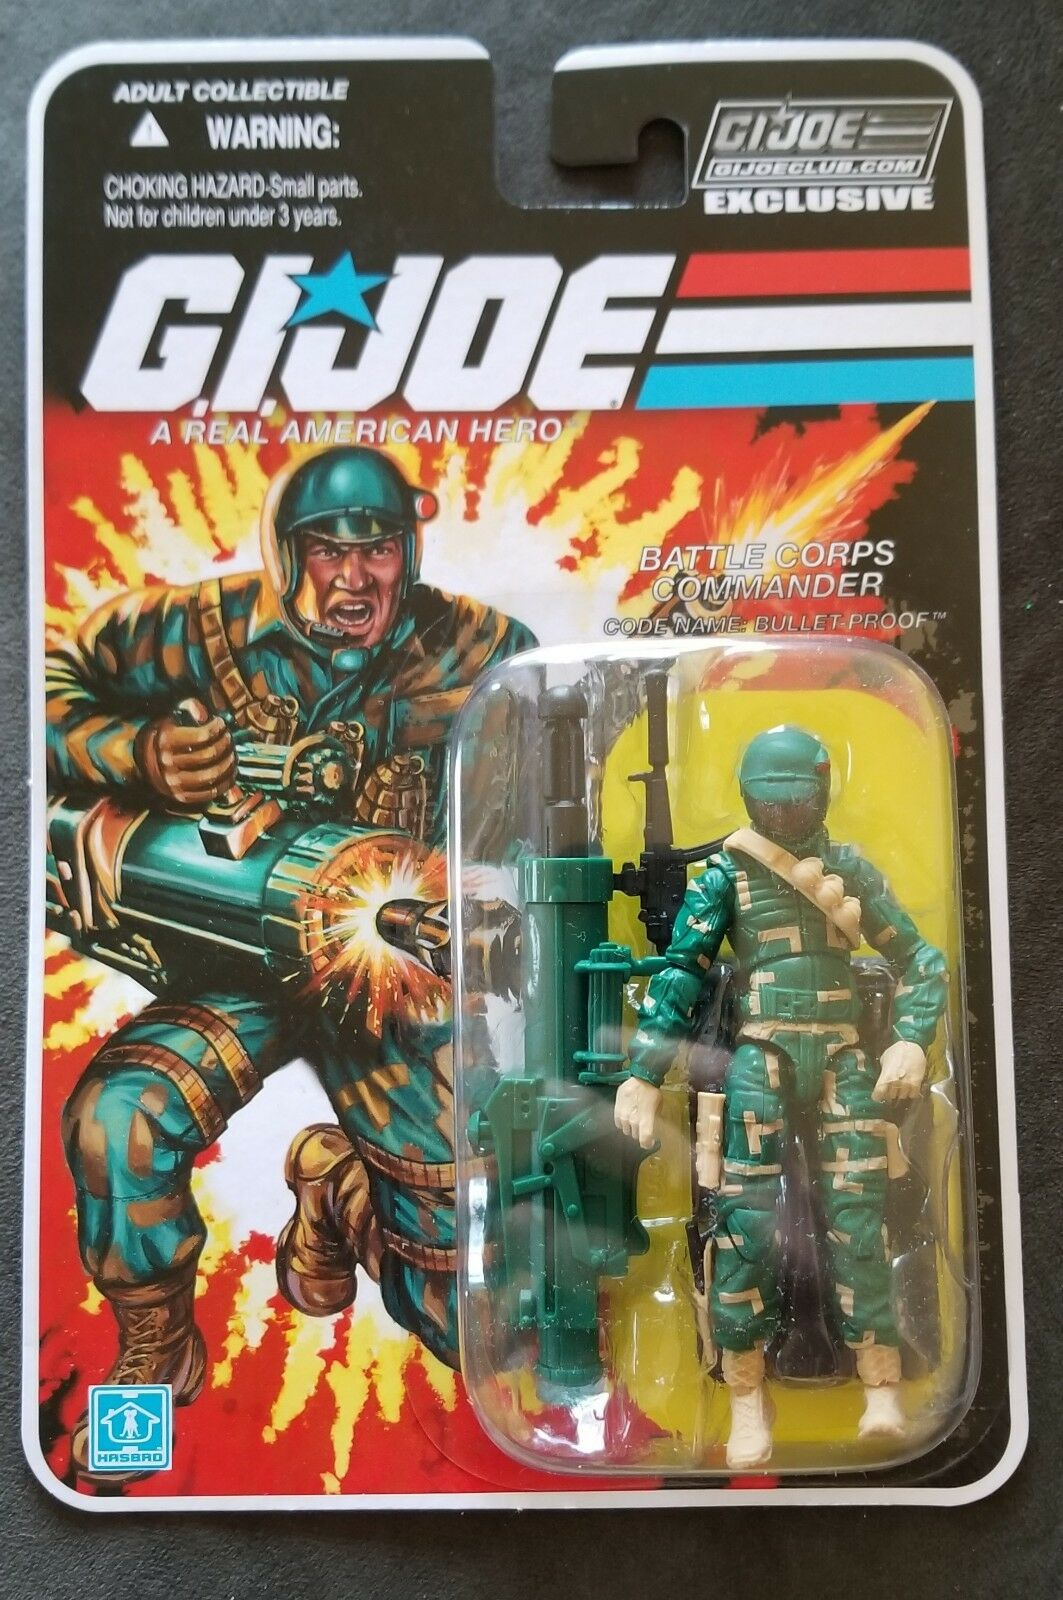 GI Joe Collectors Club FSS 8.0 BULLET-PROOF - 3.75in. Action Figure - NEW - MOC